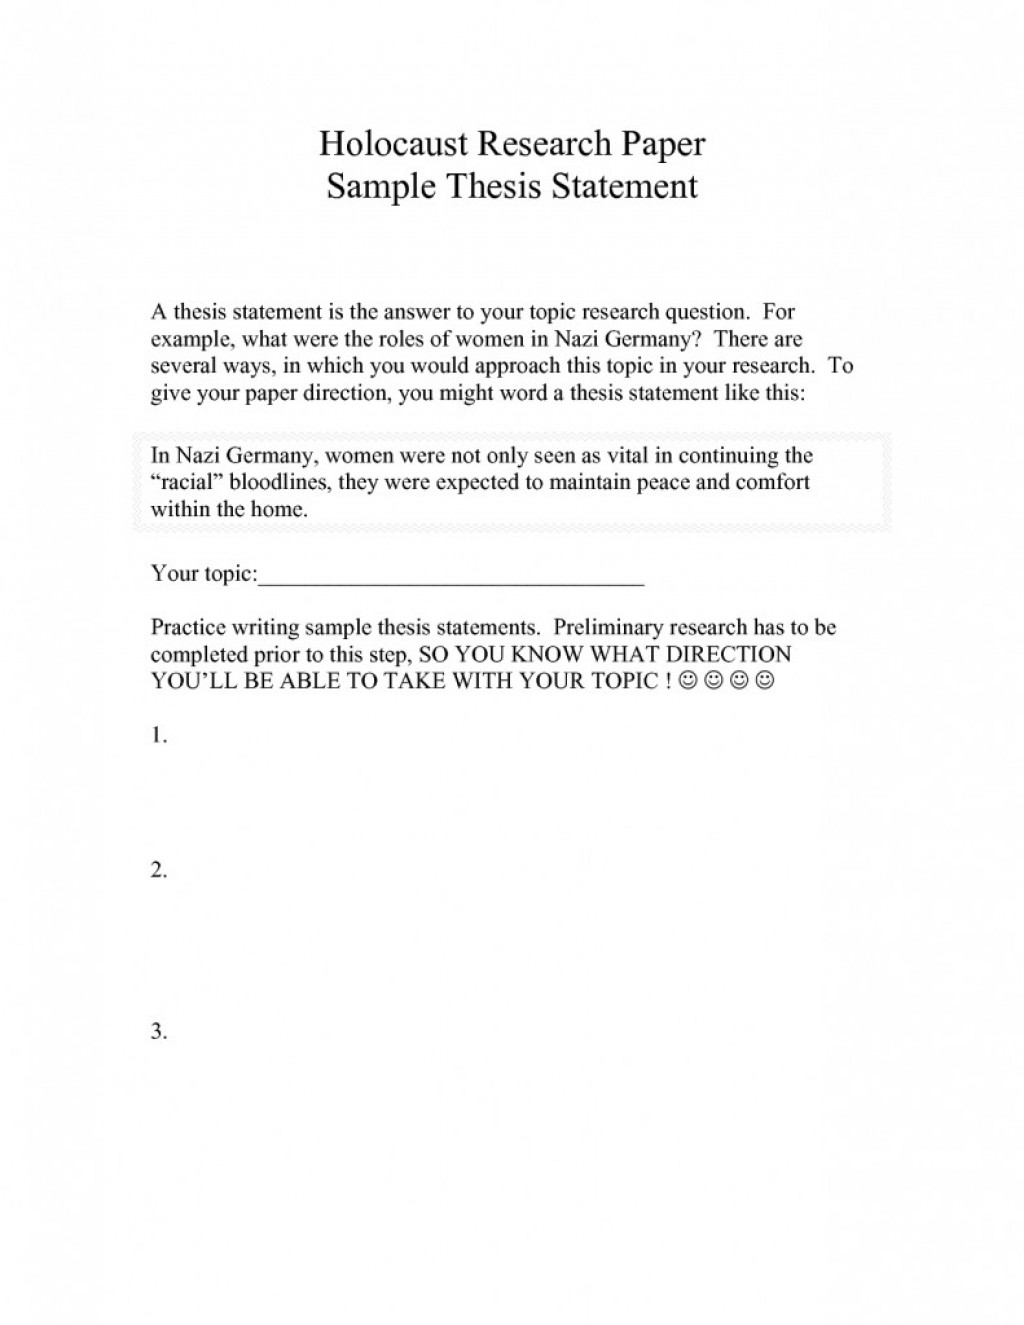 005 Obesity Argumentative Essay Term Paper Writing Service Thesis Business Law Questionsment 791x1024 Incredible On Example Photo Ideas Research Childhood Fantastic Statement Large